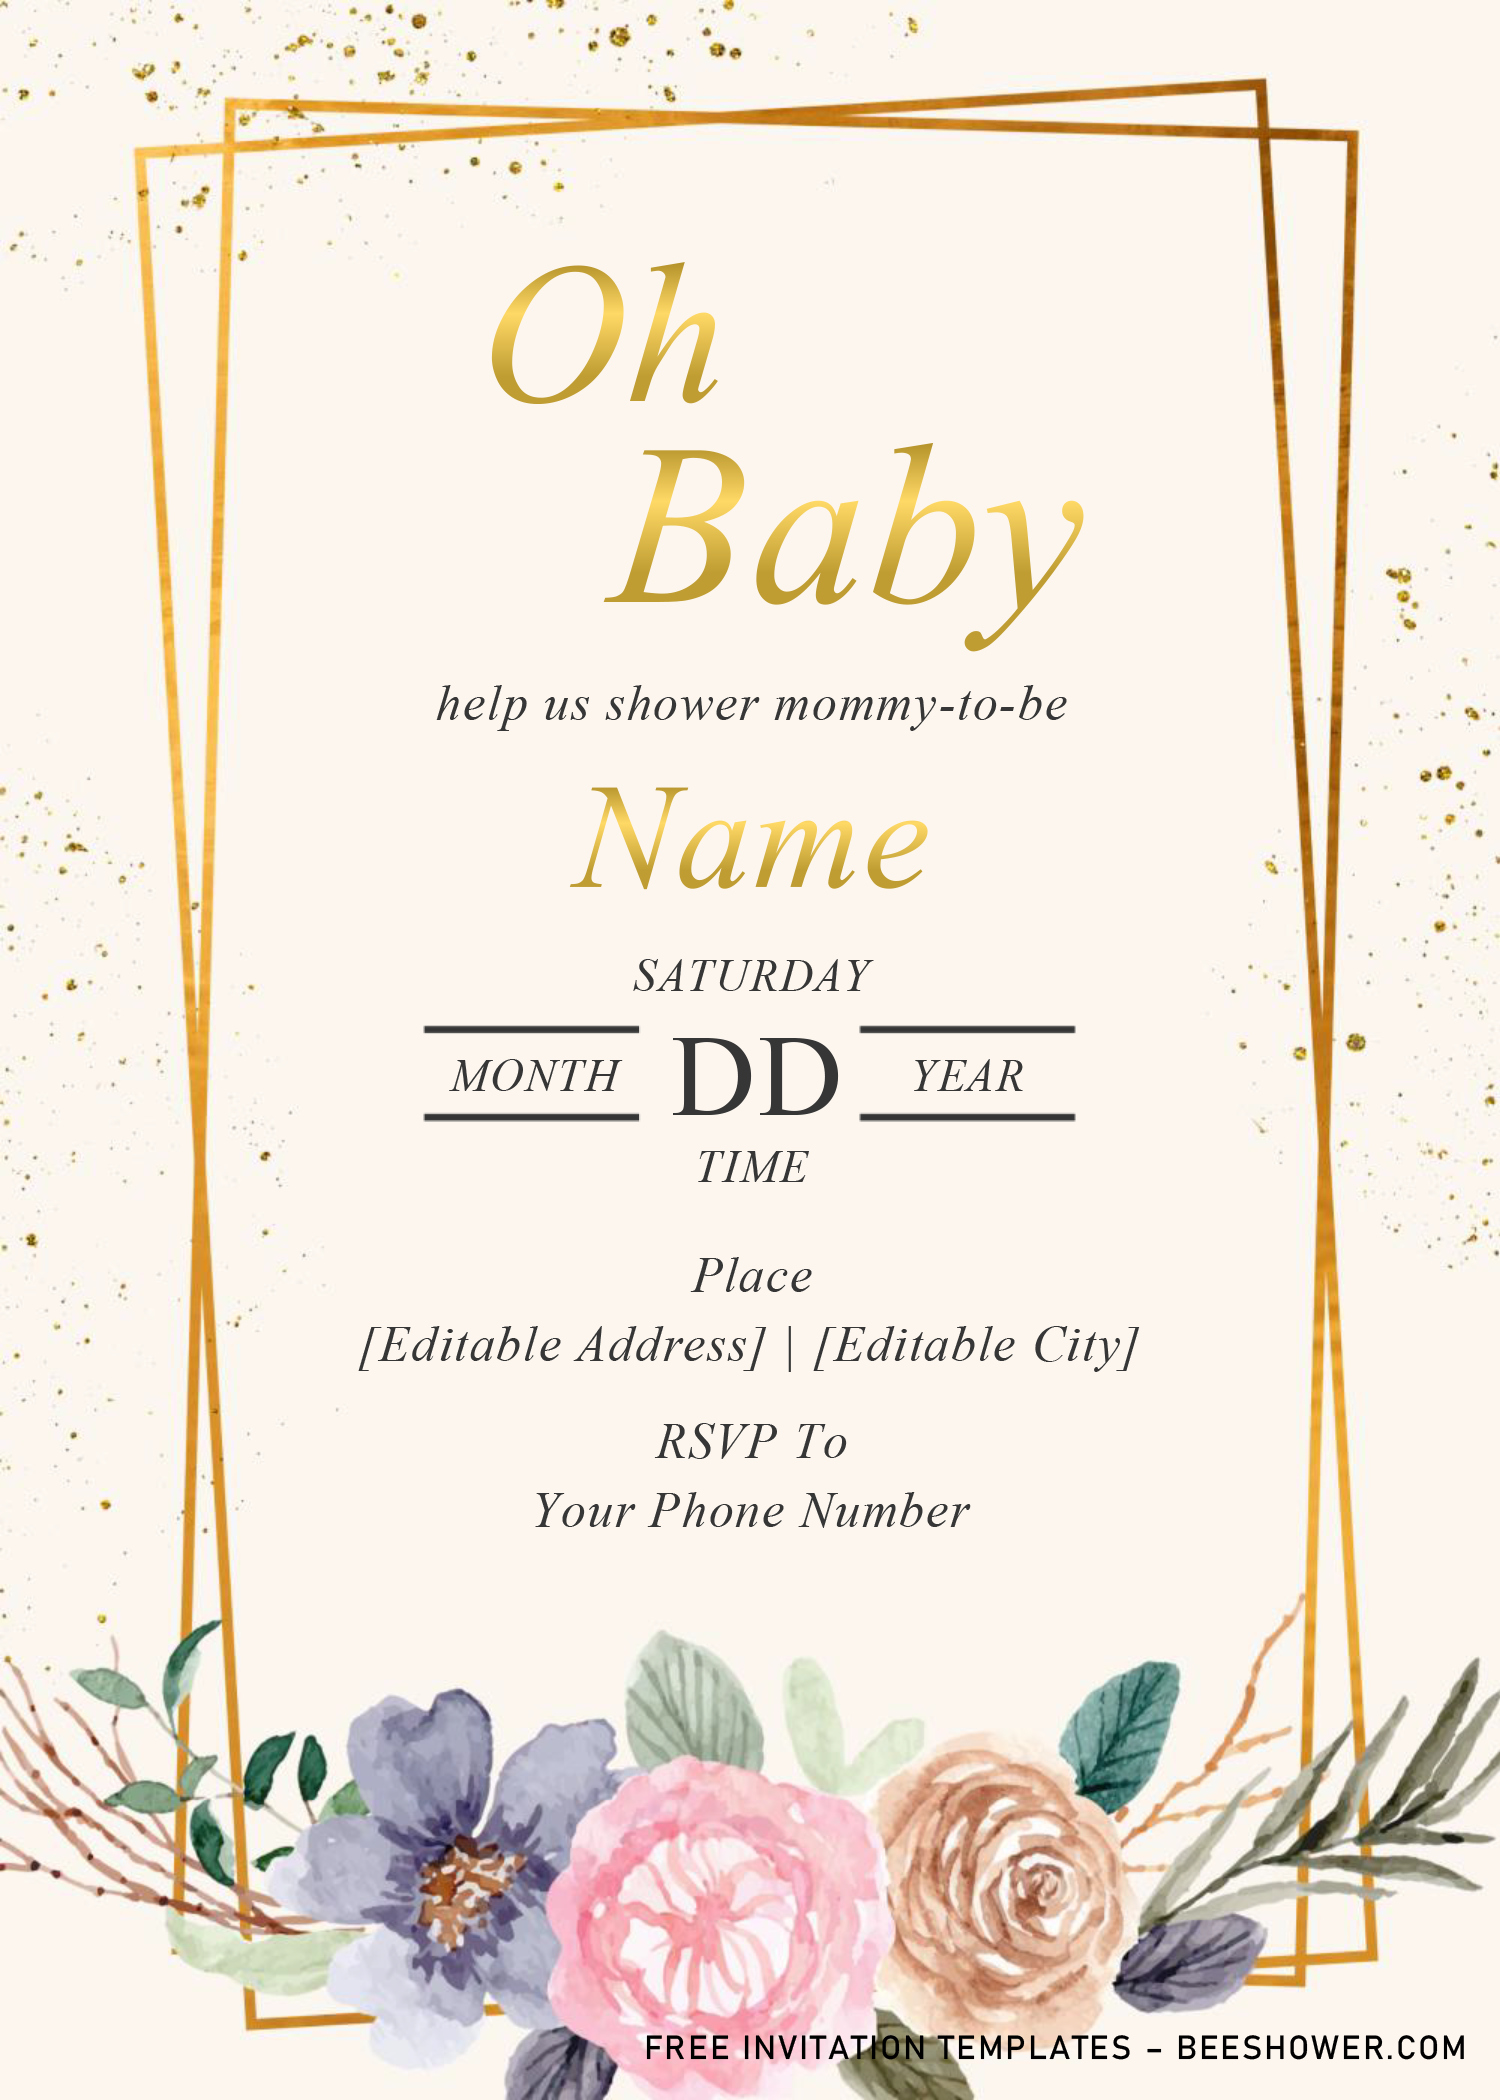 Floral And Geometric Baby Shower Invitation Templates Editable With Ms Baby Shower Invitation Templates Printable Baby Shower Invitations Invitation Template